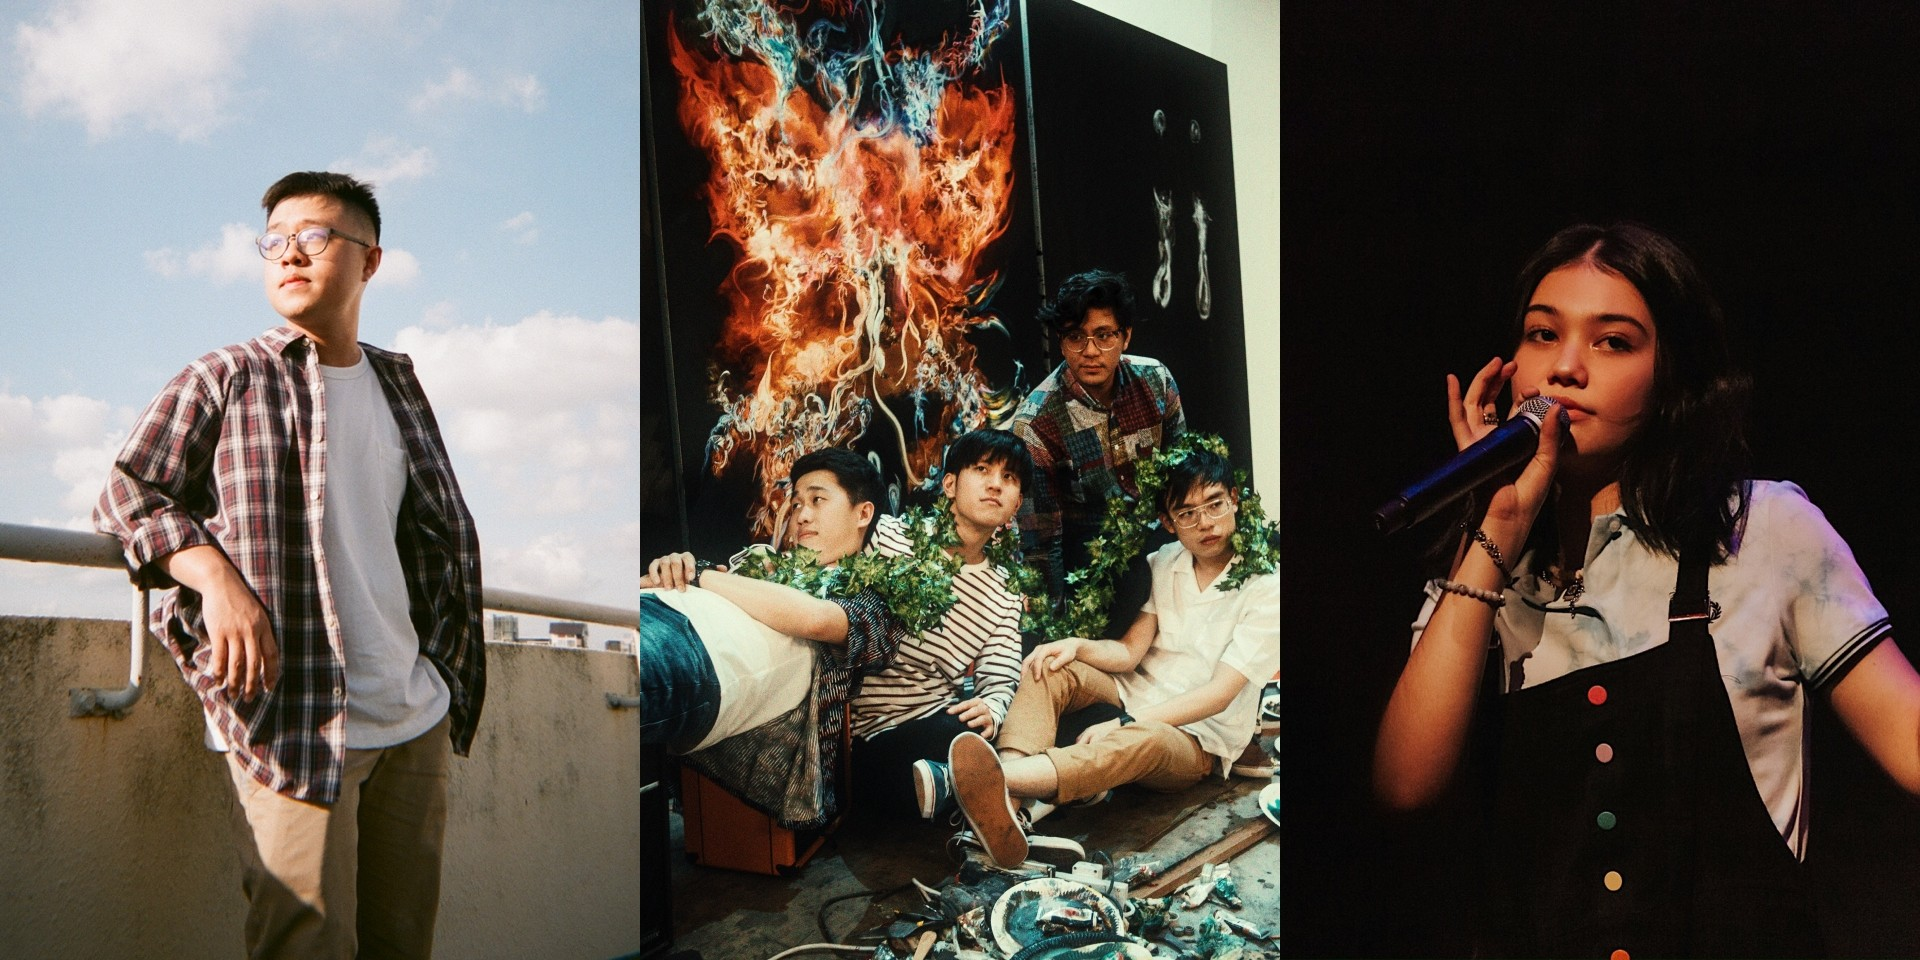 M1LDL1FE, YAØ and Shye to debut at Karaoke Livestream Concert by Bandwagon Sessions x EBX Live